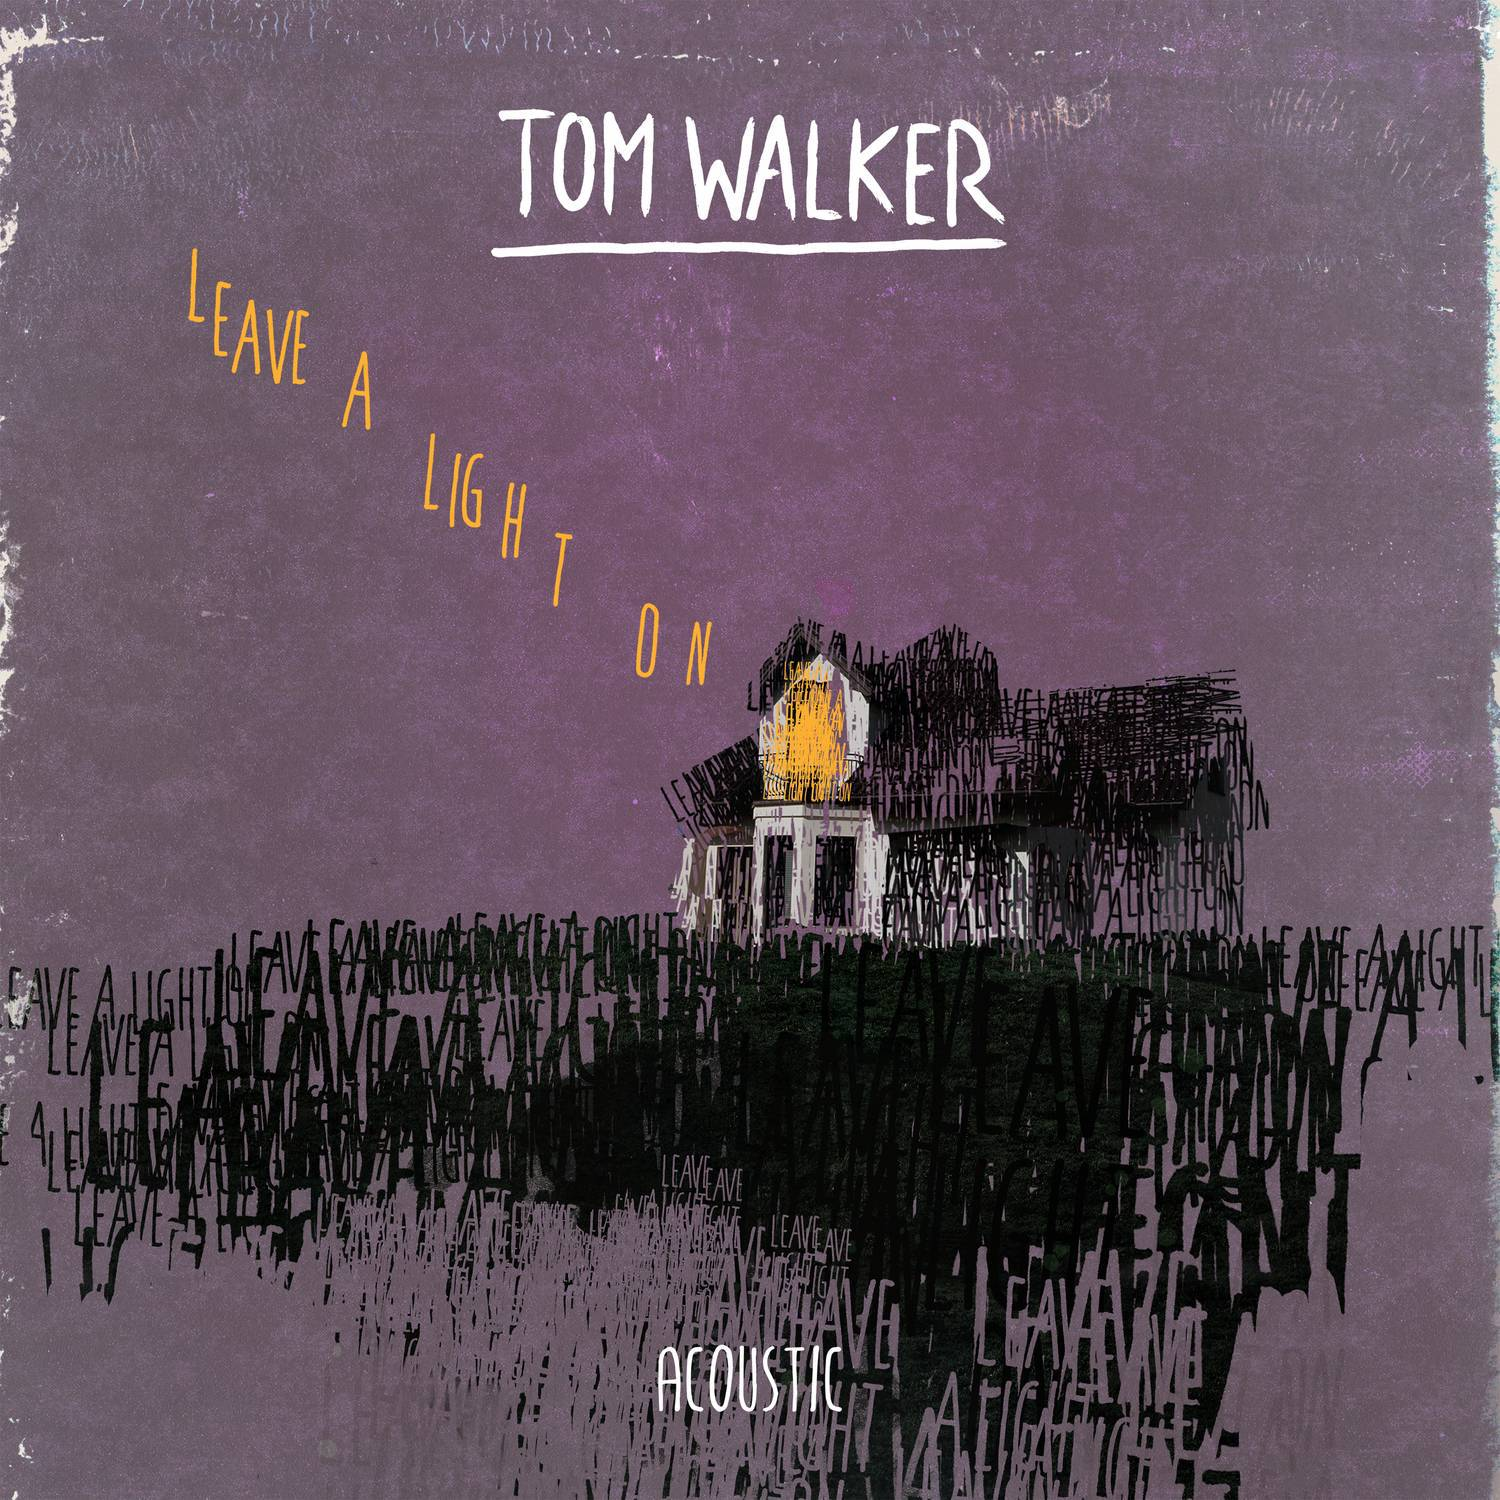 Tom Walker - Leave A Light On (Acoustic) 英式民谣